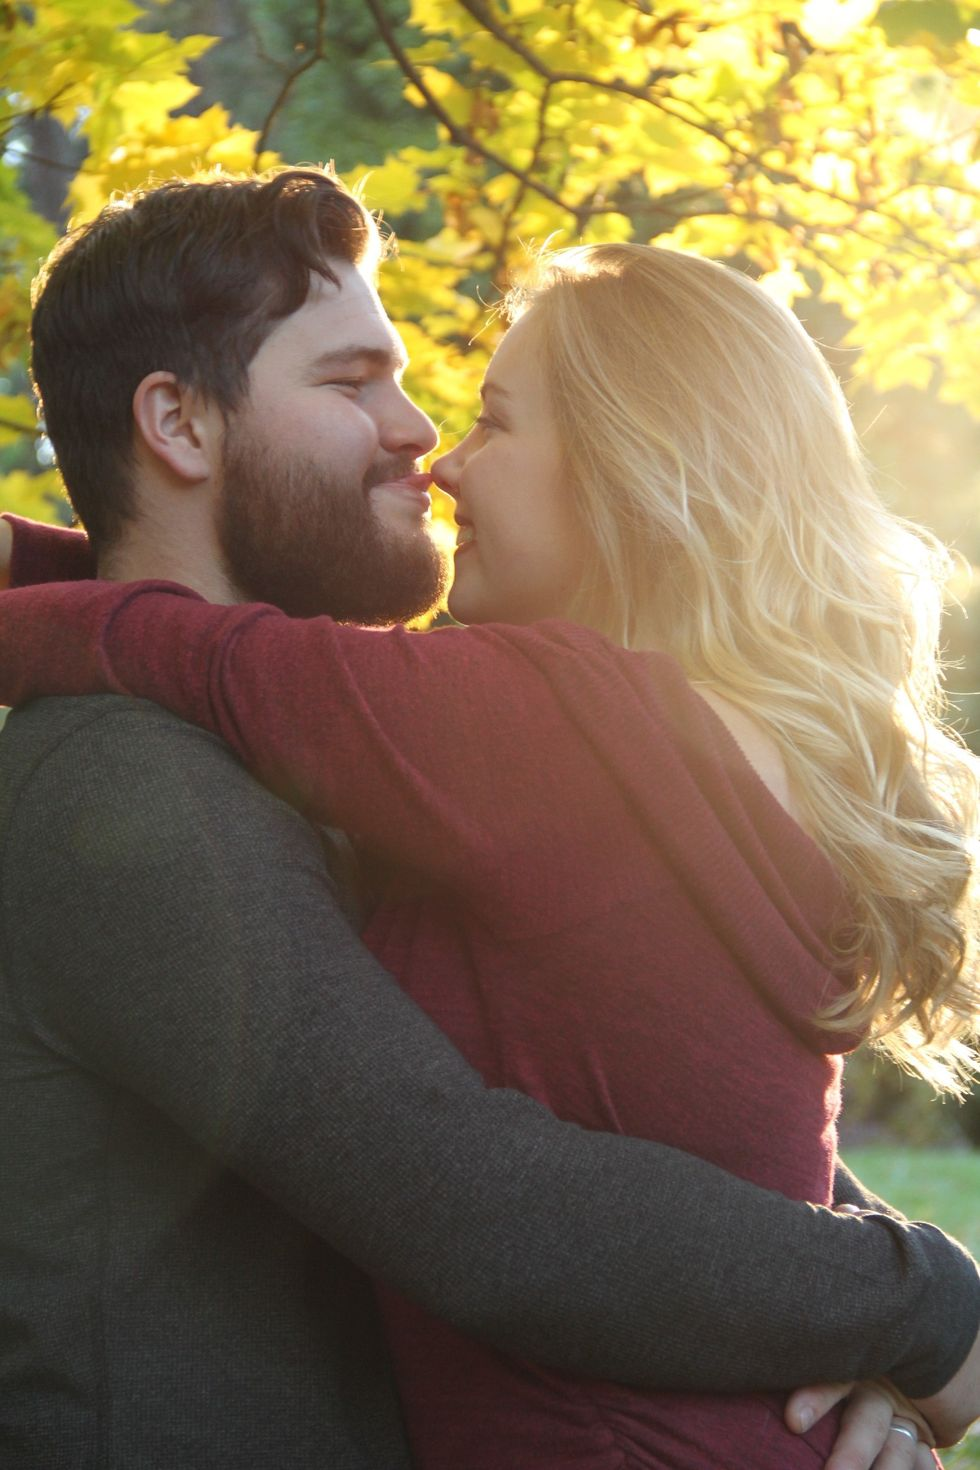 10 Of The Biggest 'No-No's' Of An Engagement Photoshoot As Told By A Bride Who Has Gone Through Them